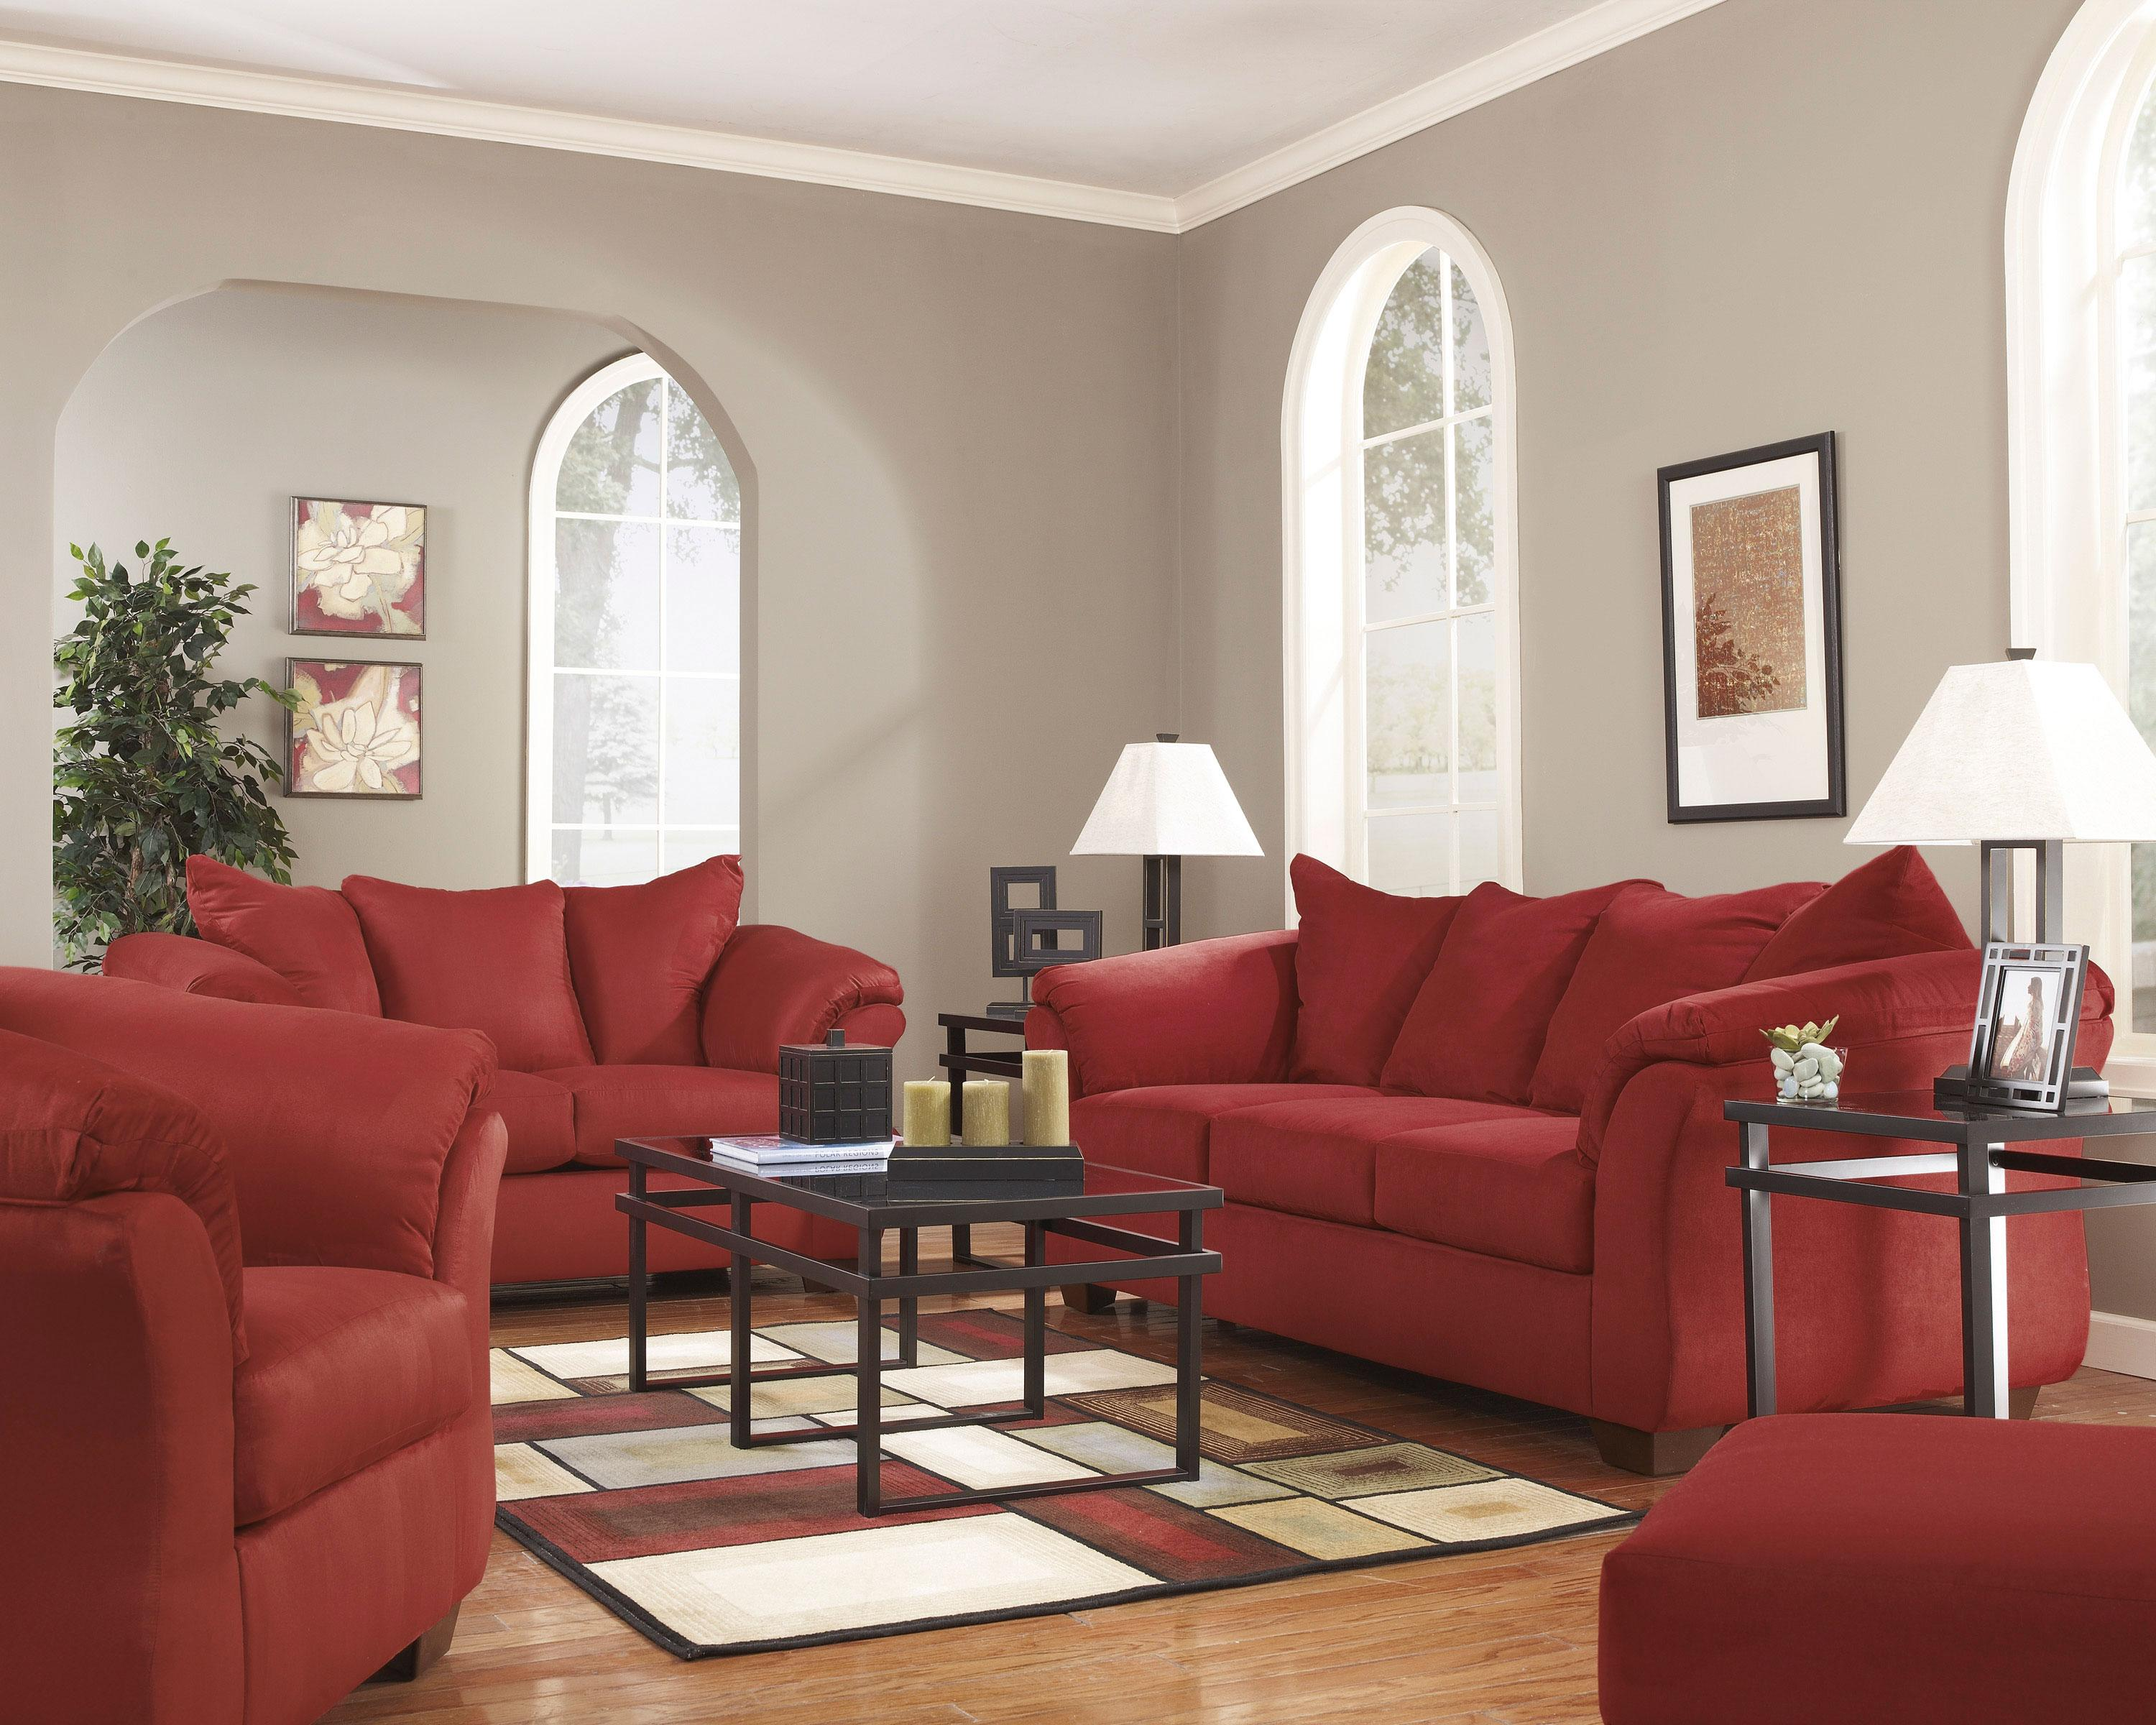 Signature Design by Ashley Darcy - Salsa Stationary Living Room Group - Item Number: 75001 Living Room Group 2